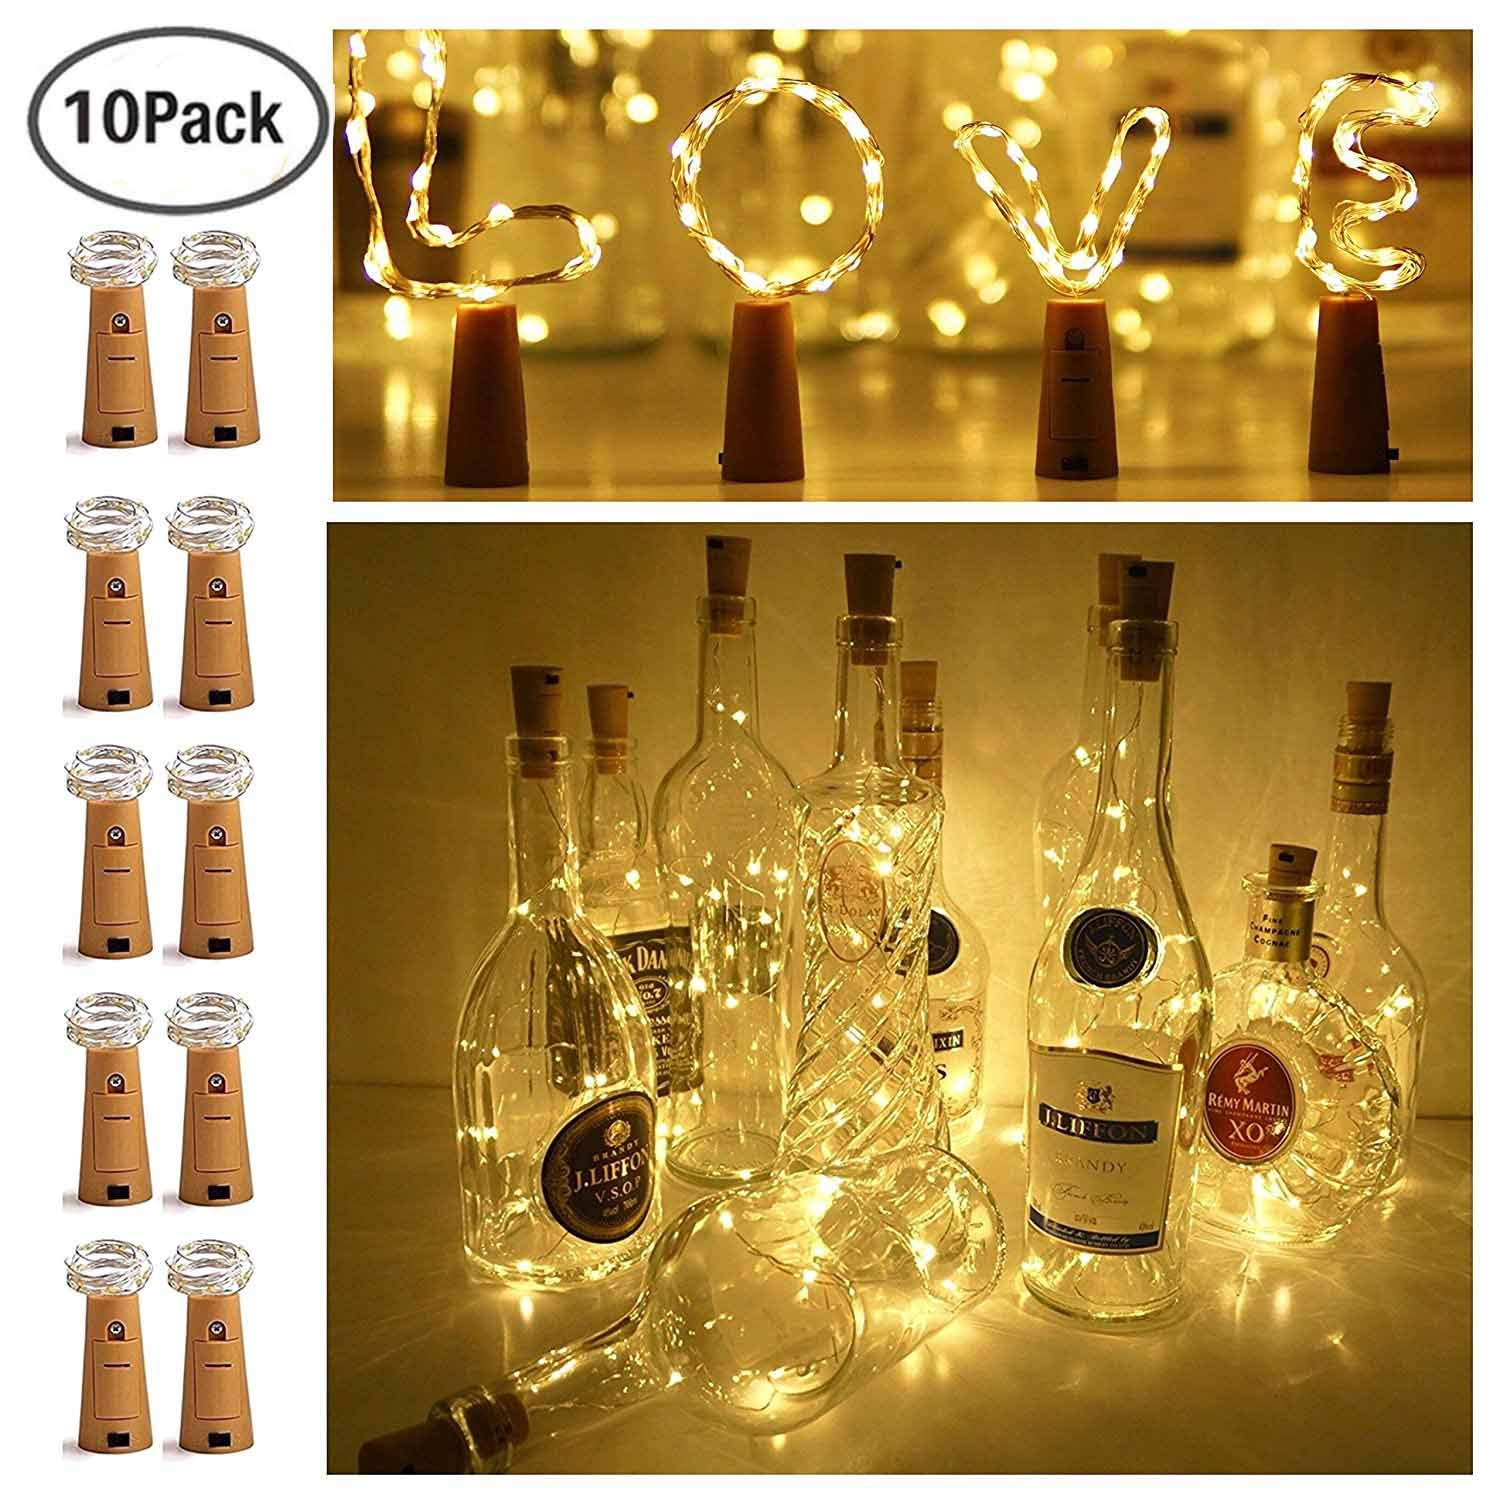 10LED Bottle Cork String Lights Wine Bottle Fairy Mini Copper Wire, Battery Operated Starry Lights for DIY Christmas Halloween Wedding Party Indoor Outdoor Decoration, 6 Pack (Mulit-Color) Ninight